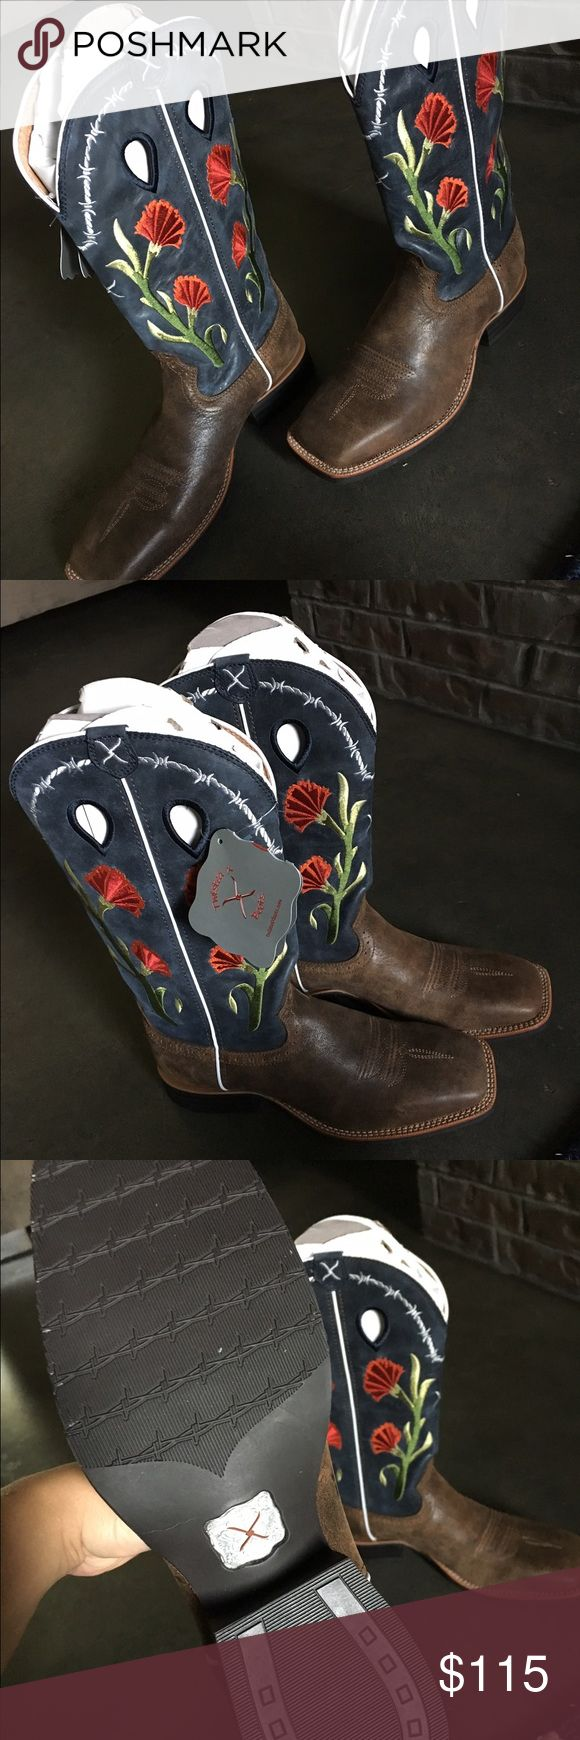 Twisted X Boots - flowering cactus Women's Western Boots 8.5 B. All leather upper, man made outside. Flowering cactus square toe boots Twisted X Shoes